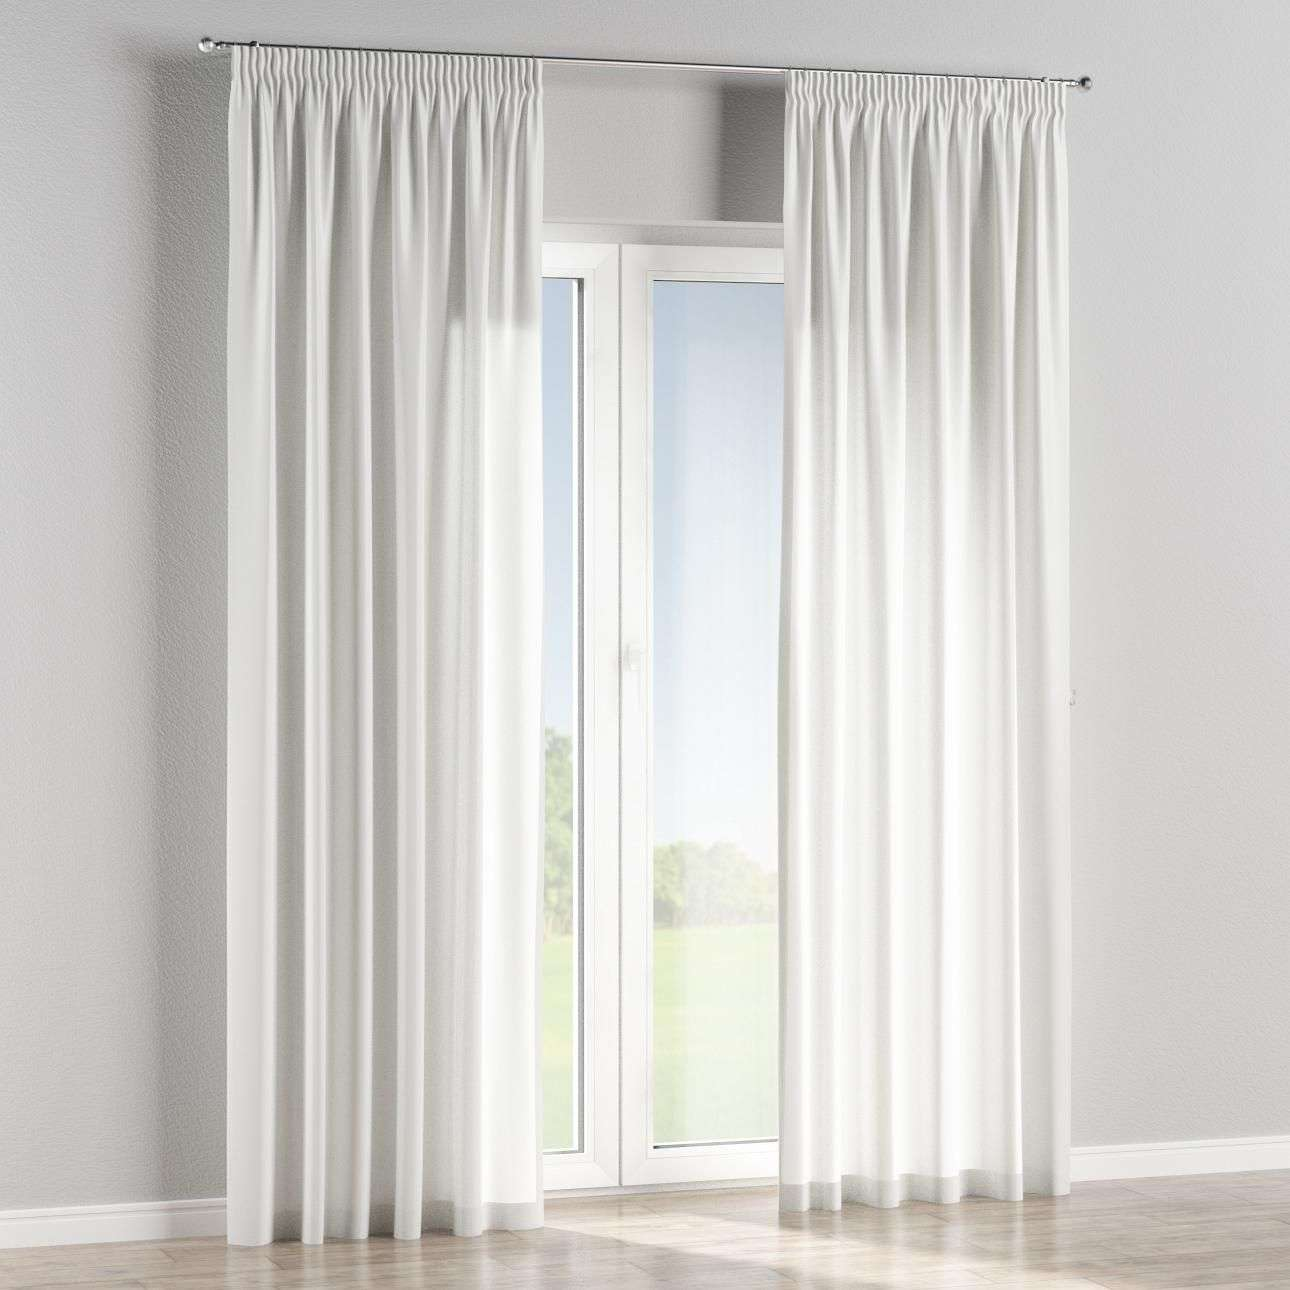 Pencil pleat lined curtains in collection Rustica, fabric: 138-10